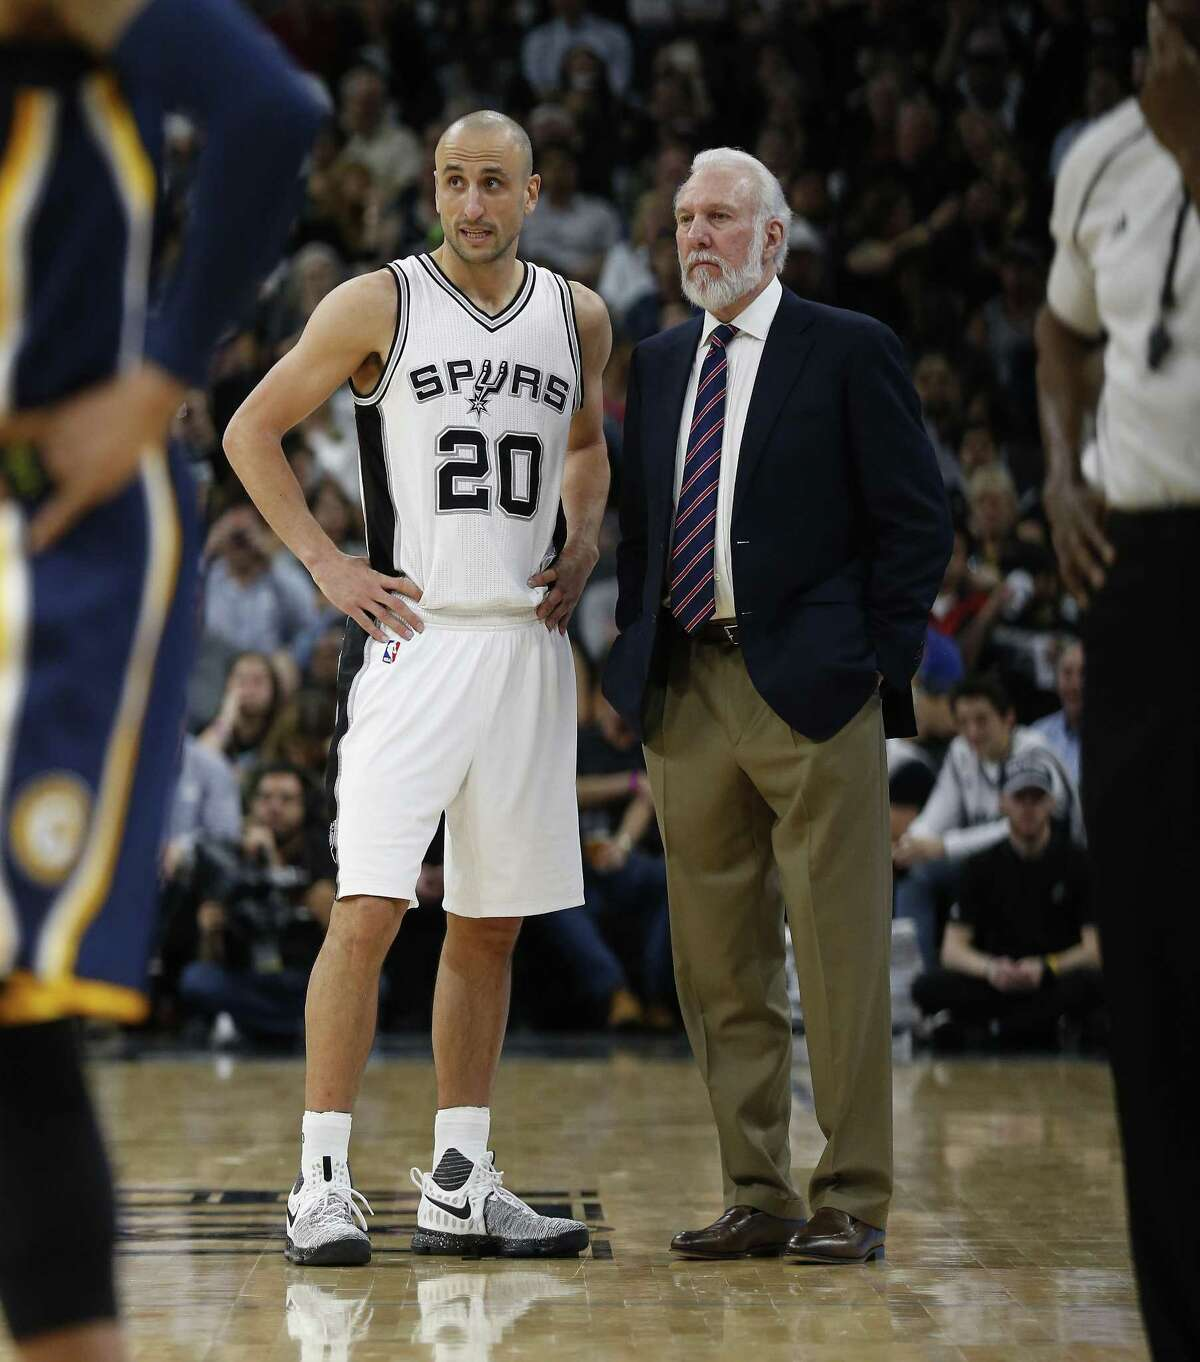 Manu Ginobili's relationship with Spurs head coach Gregg Popovich has evolved over the years.